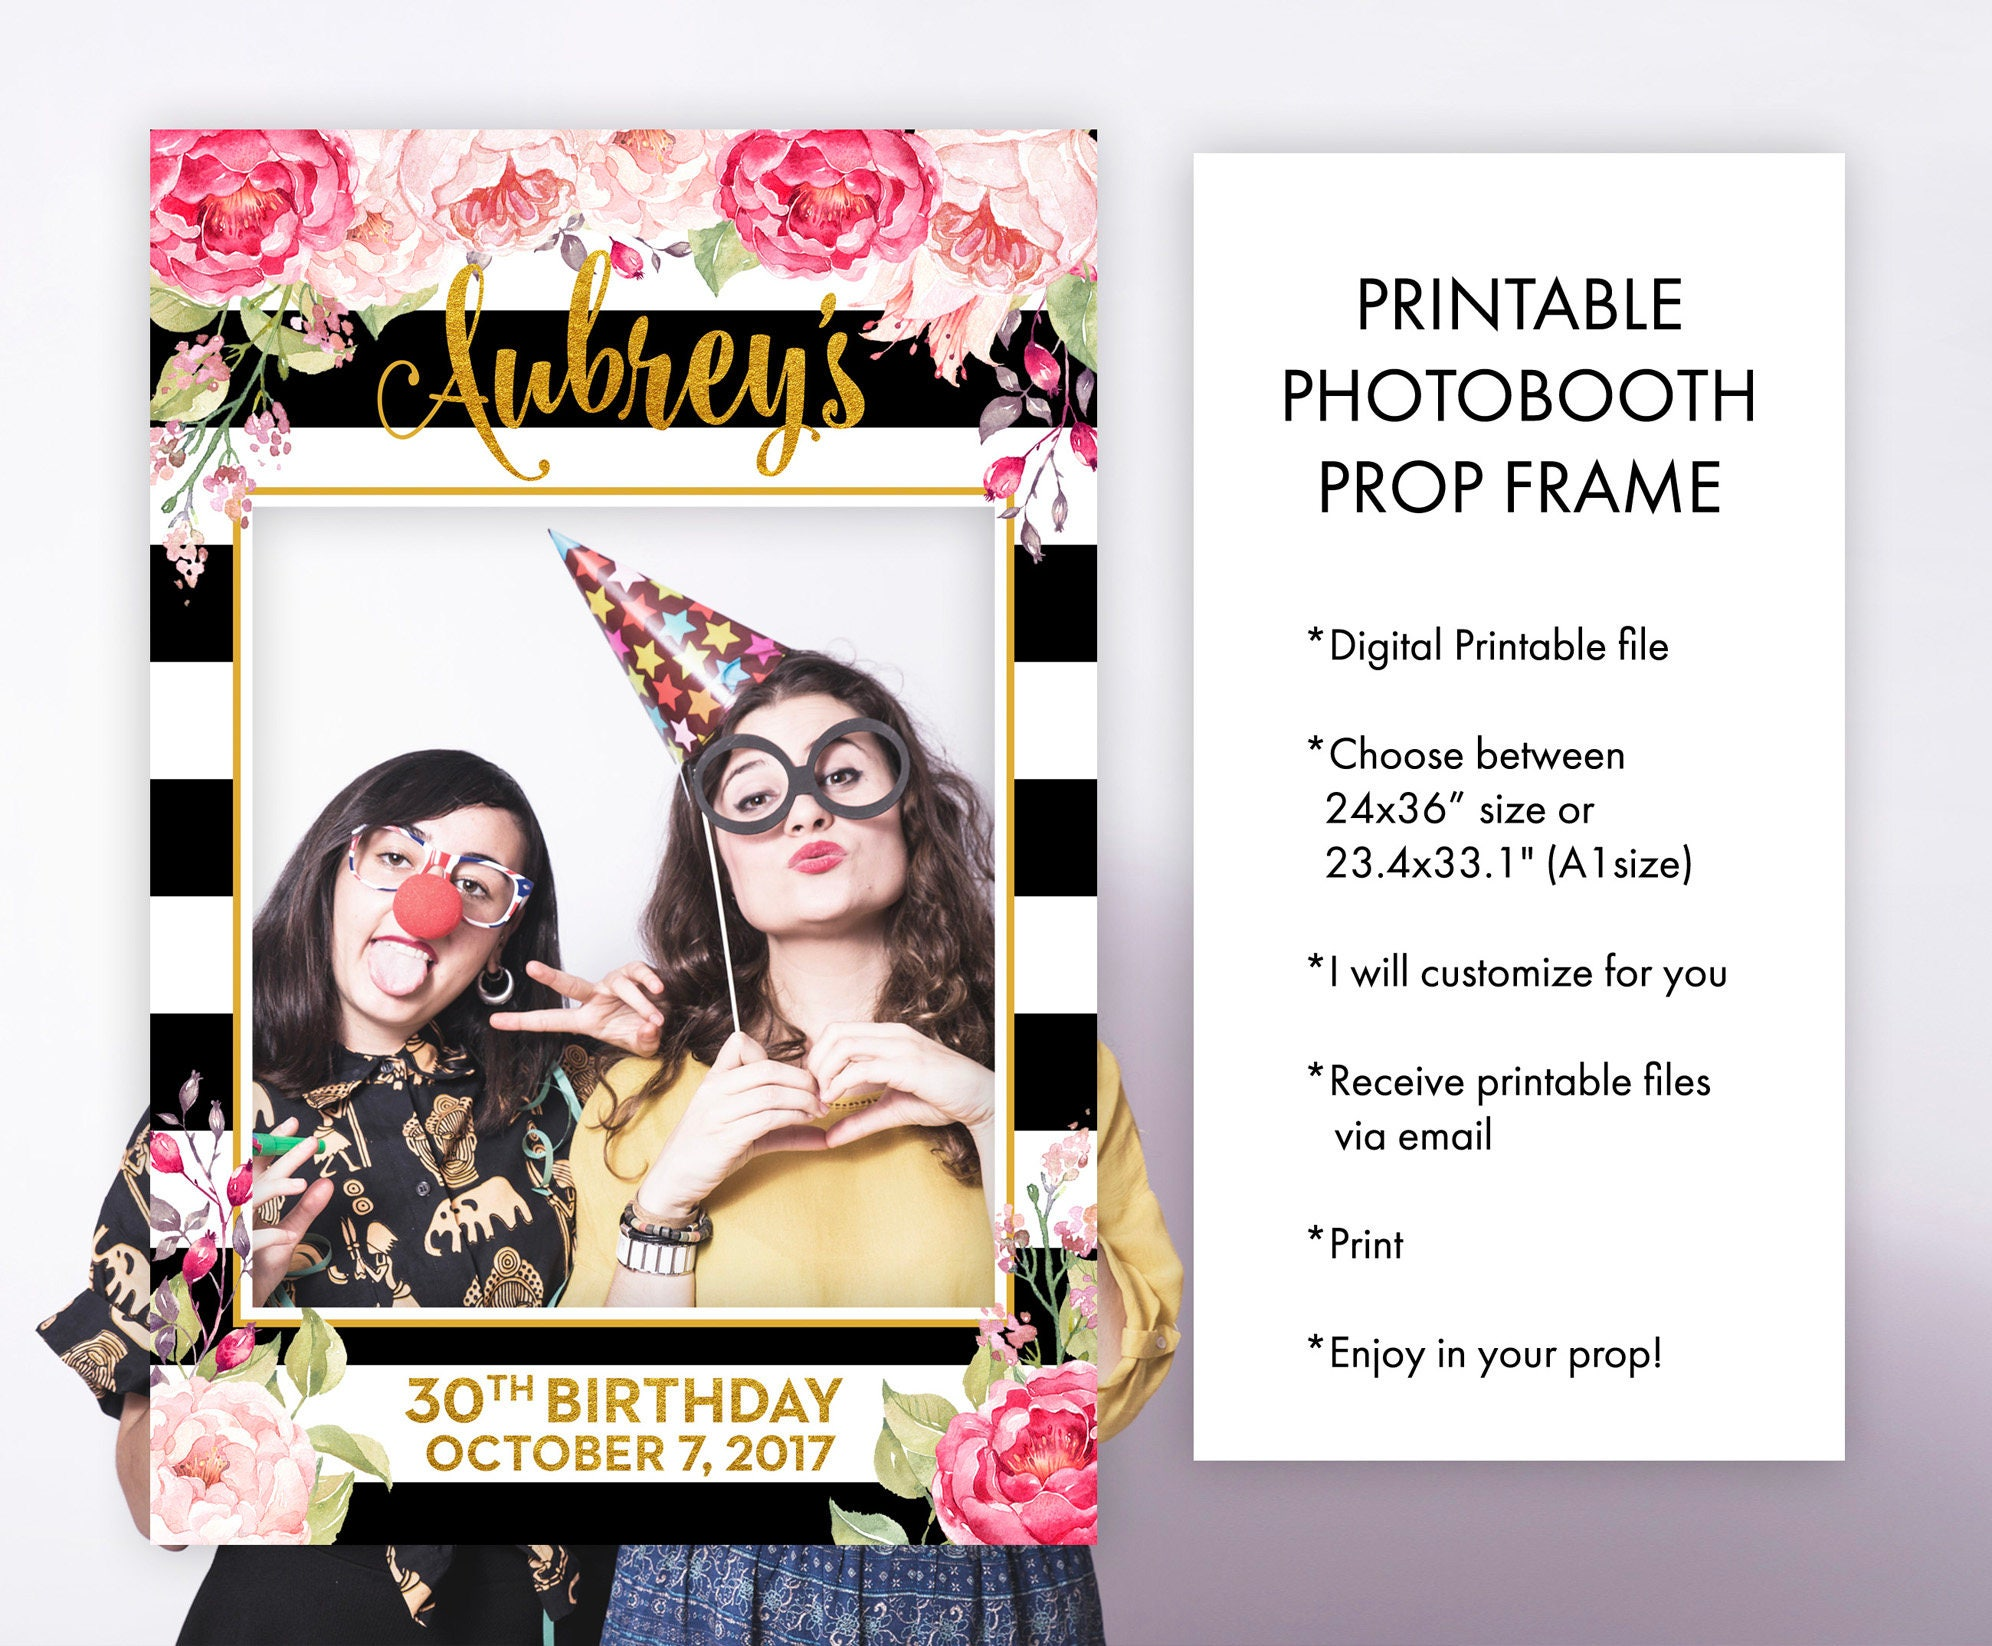 Birthday Photo Booth Frame Props Floral Pink Black and White